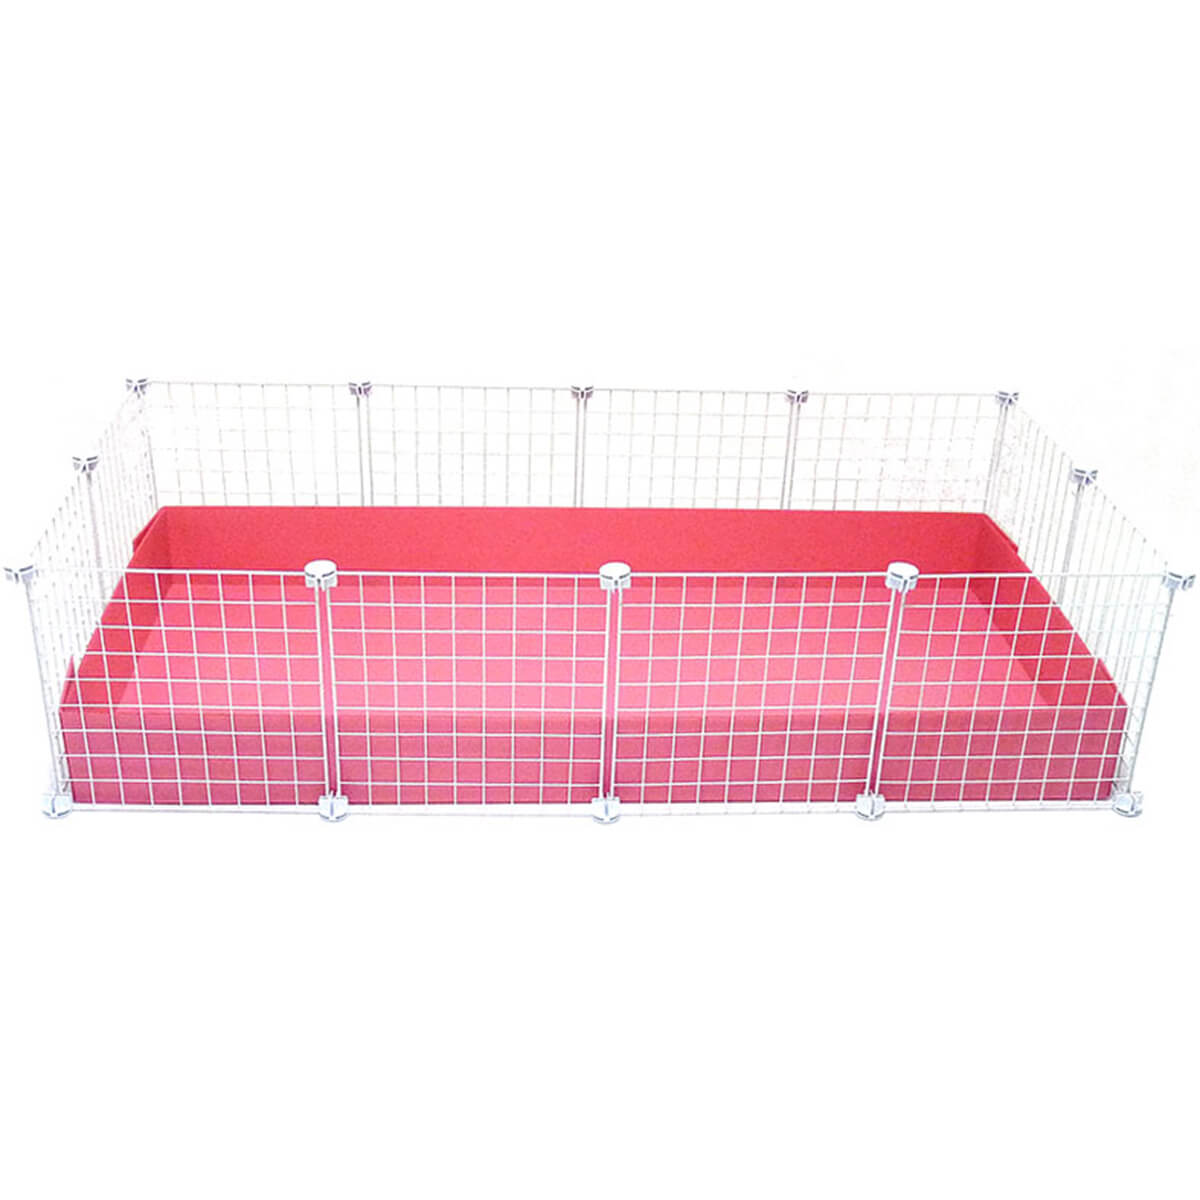 Large 2x4 grids cage clearance cages c c cages for for Coroplast guinea pig cage for sale